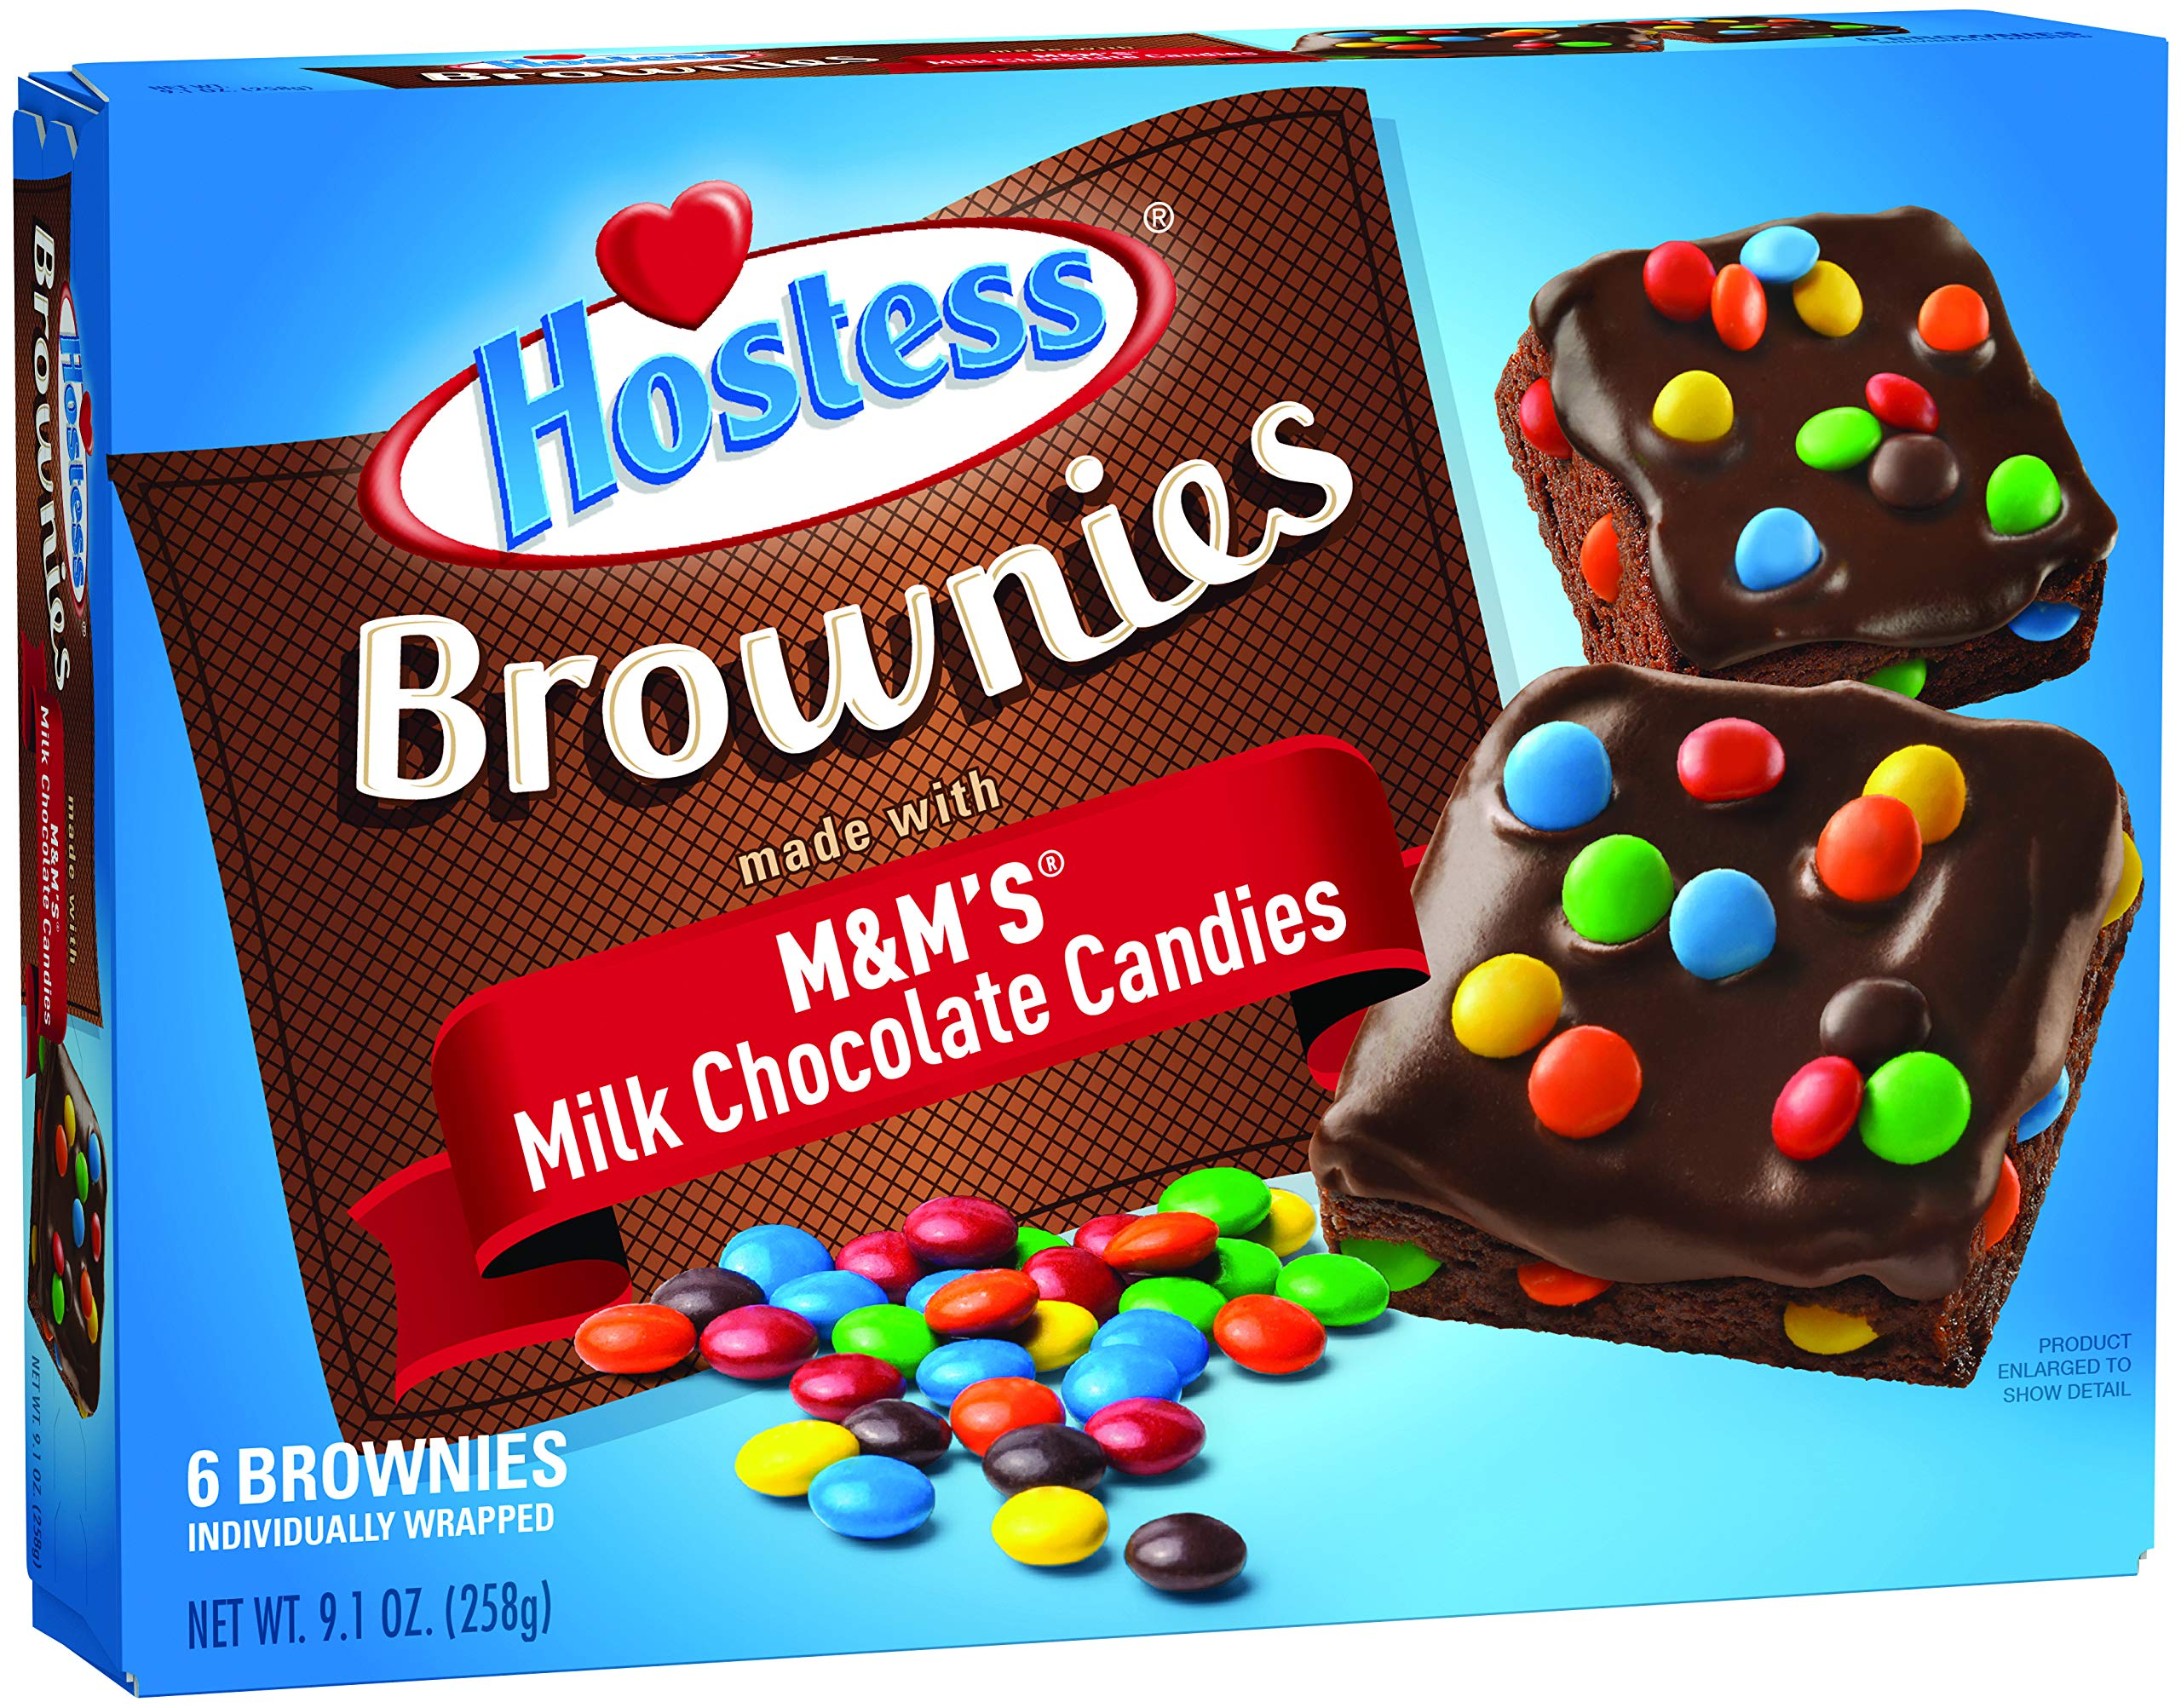 Hostess Brownies with M&M's, 6 Count (Pack of 6) by Hostess